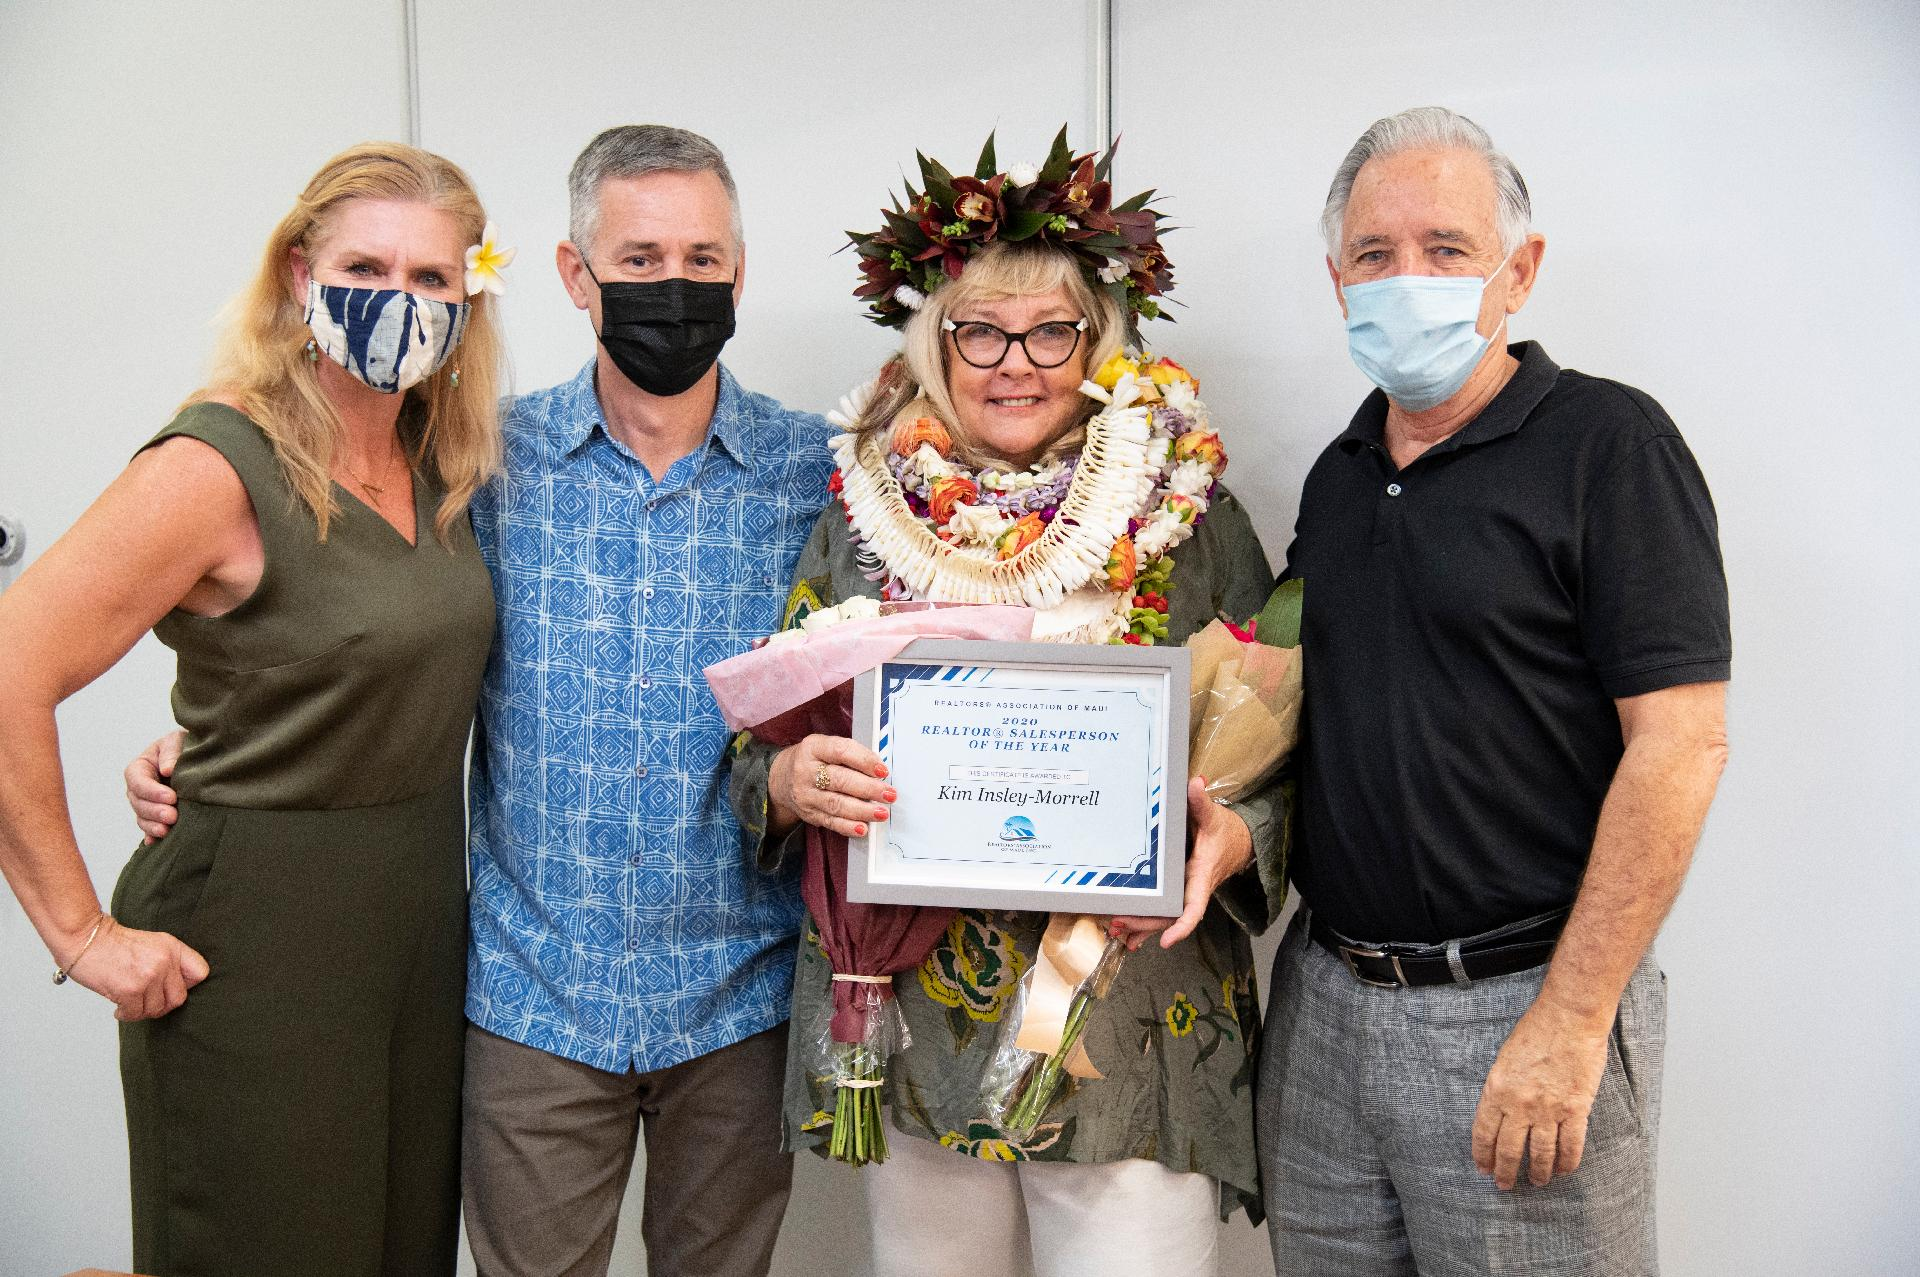 Kim Insley-Morrell awarded 2020 REALTOR® Salesperson of the Year on Maui Picture